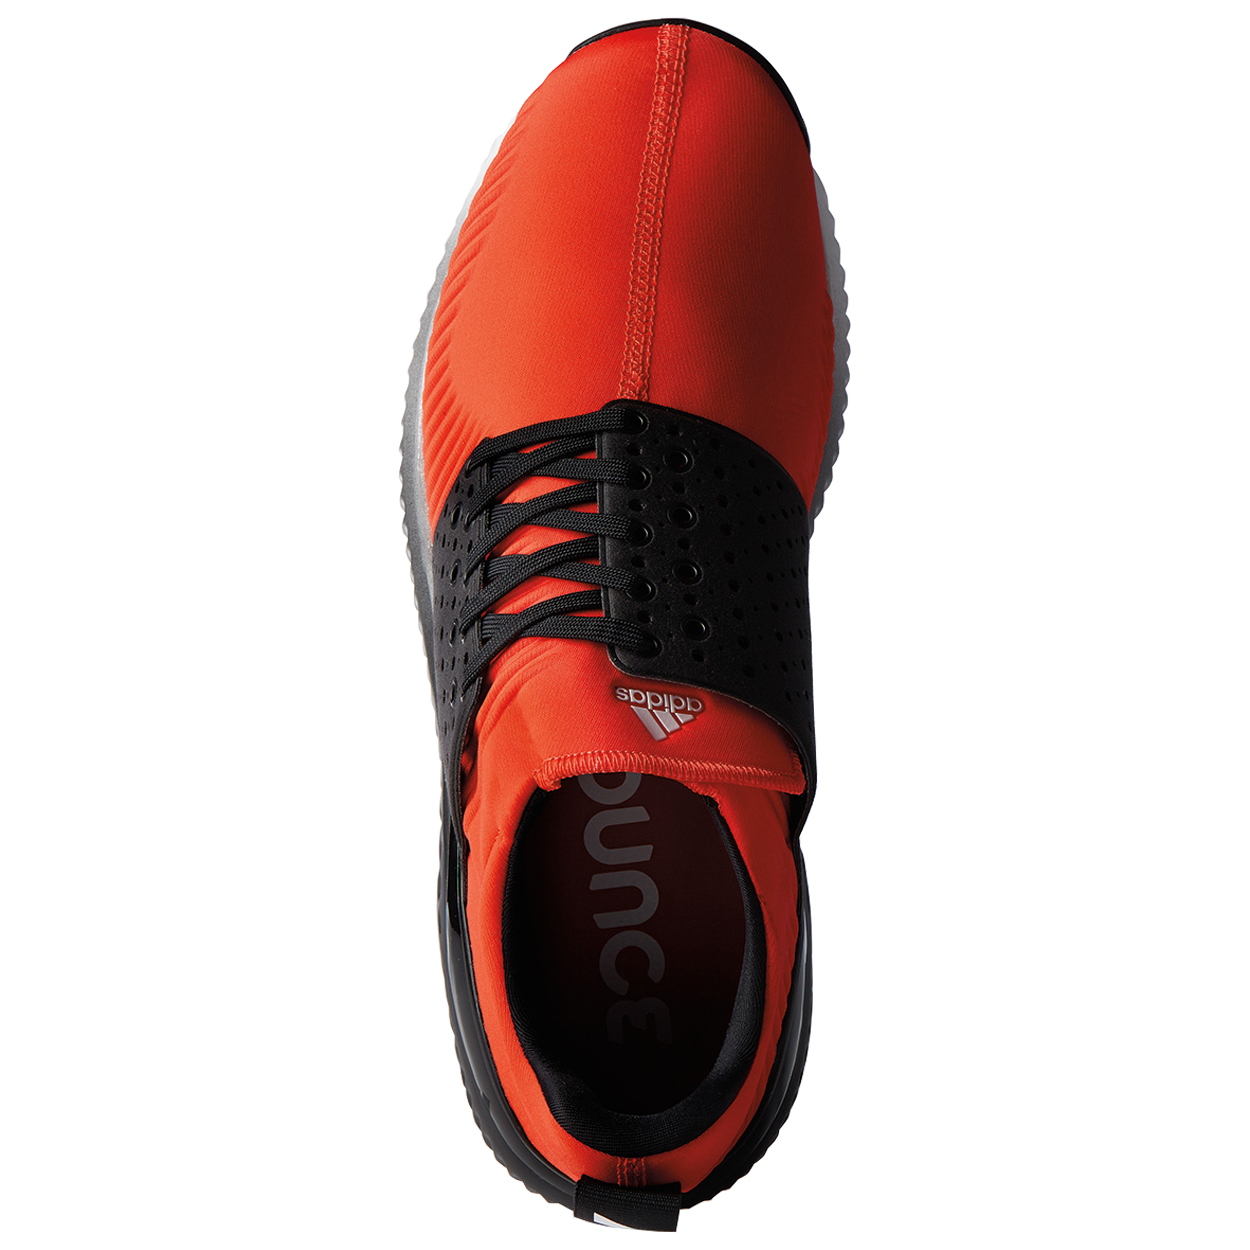 Adidas-Men-039-s-Adicross-Bounce-Golf-Shoes-New thumbnail 18